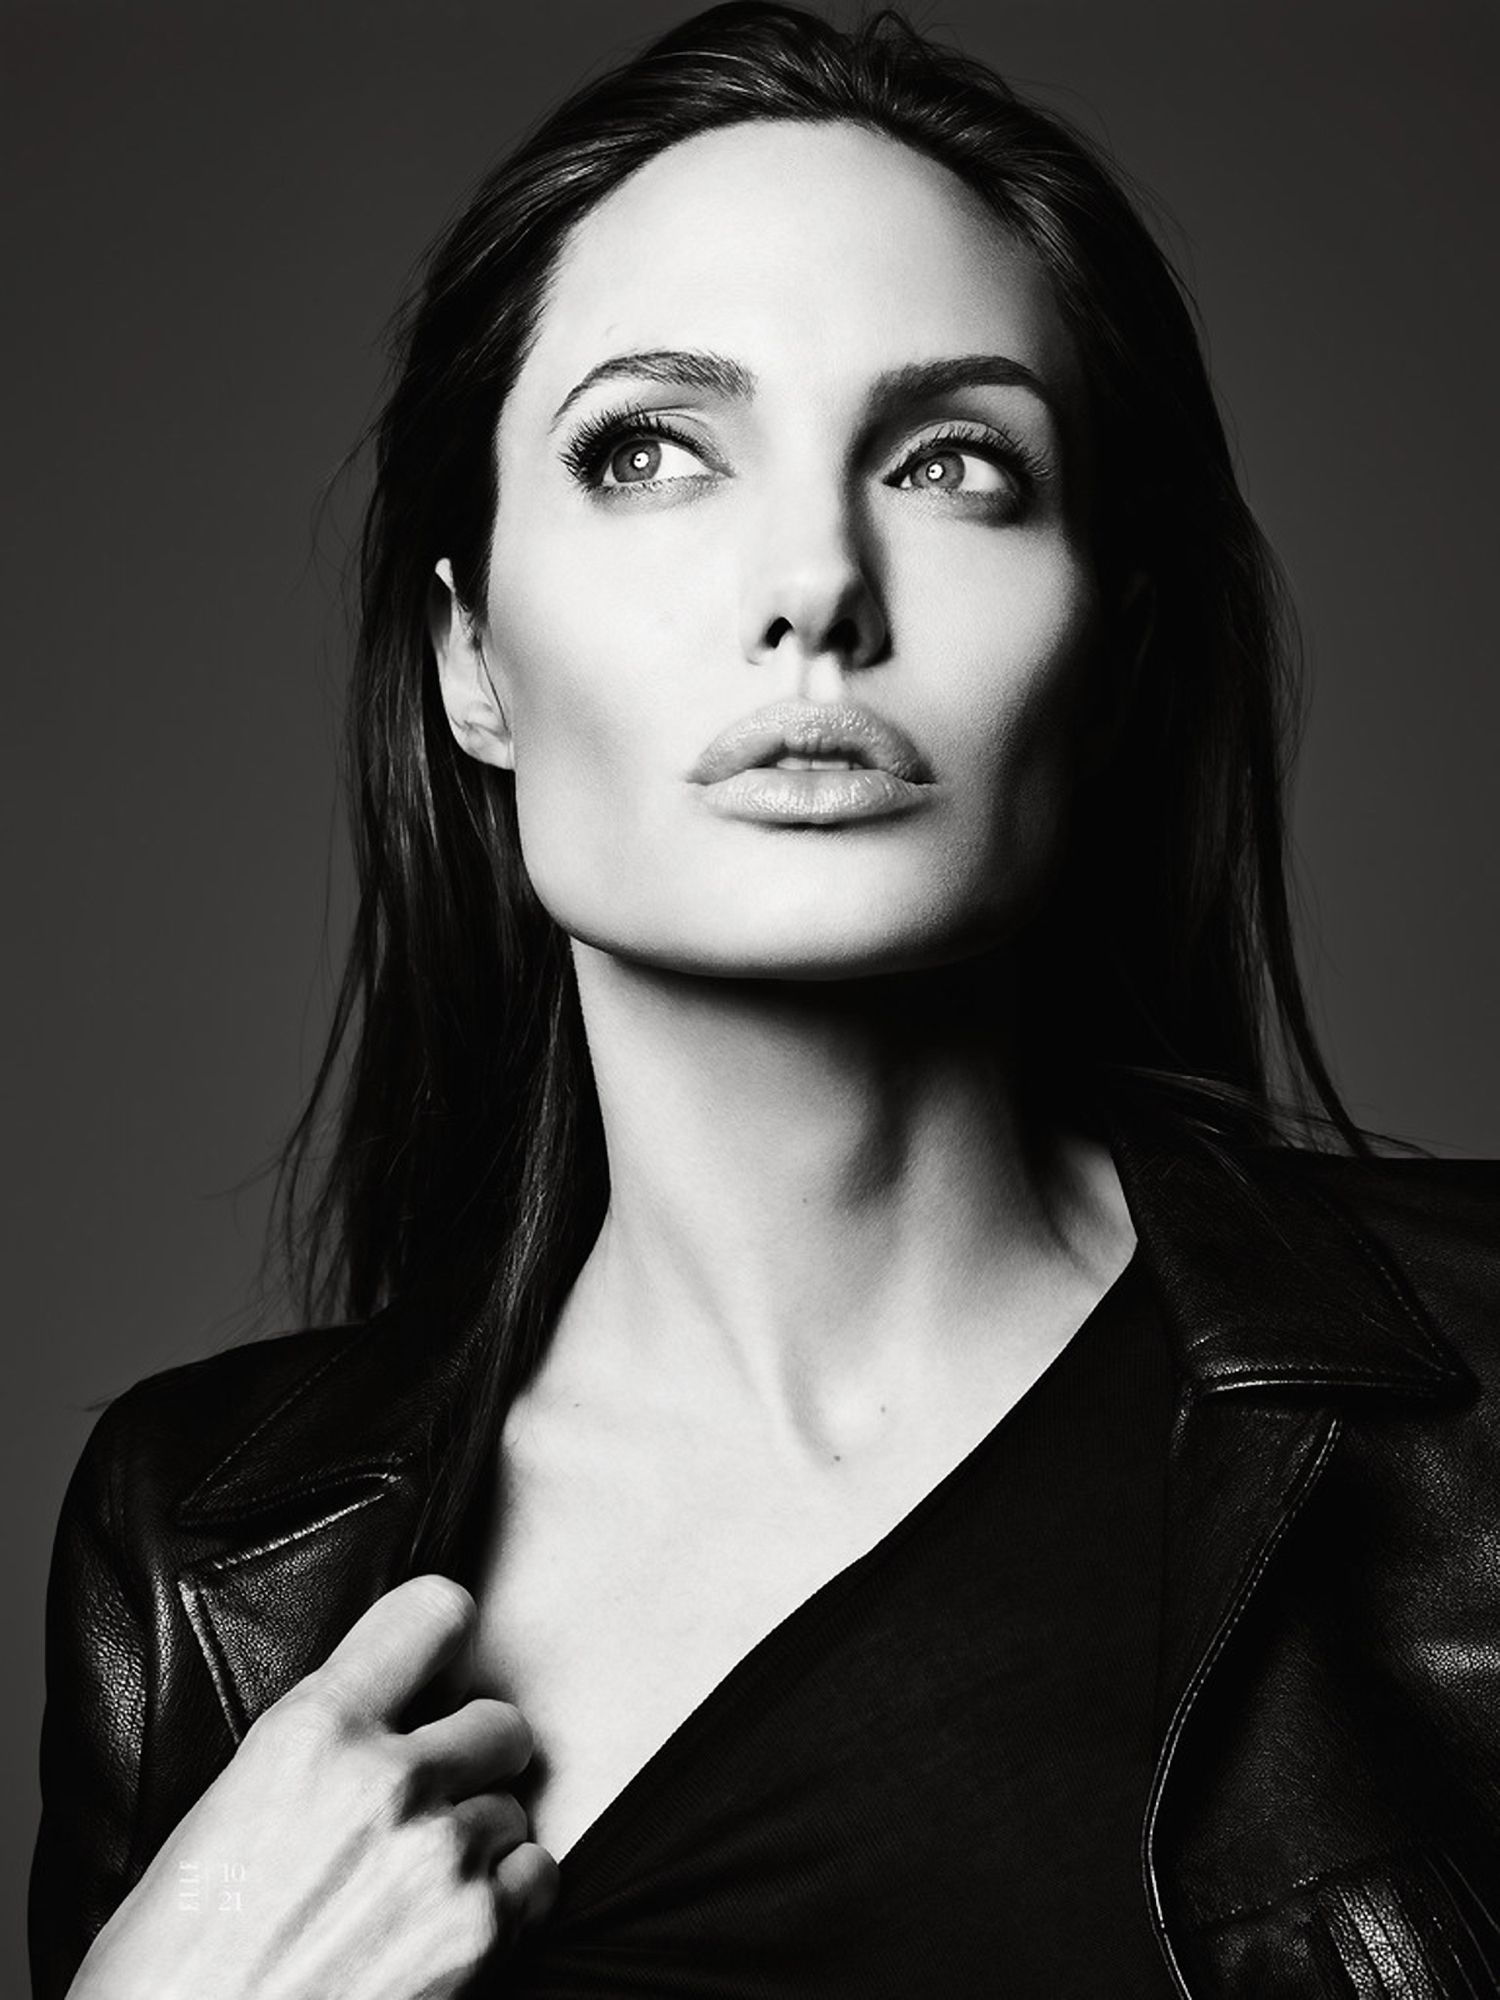 Angelina Jolie Wallpaper For Android